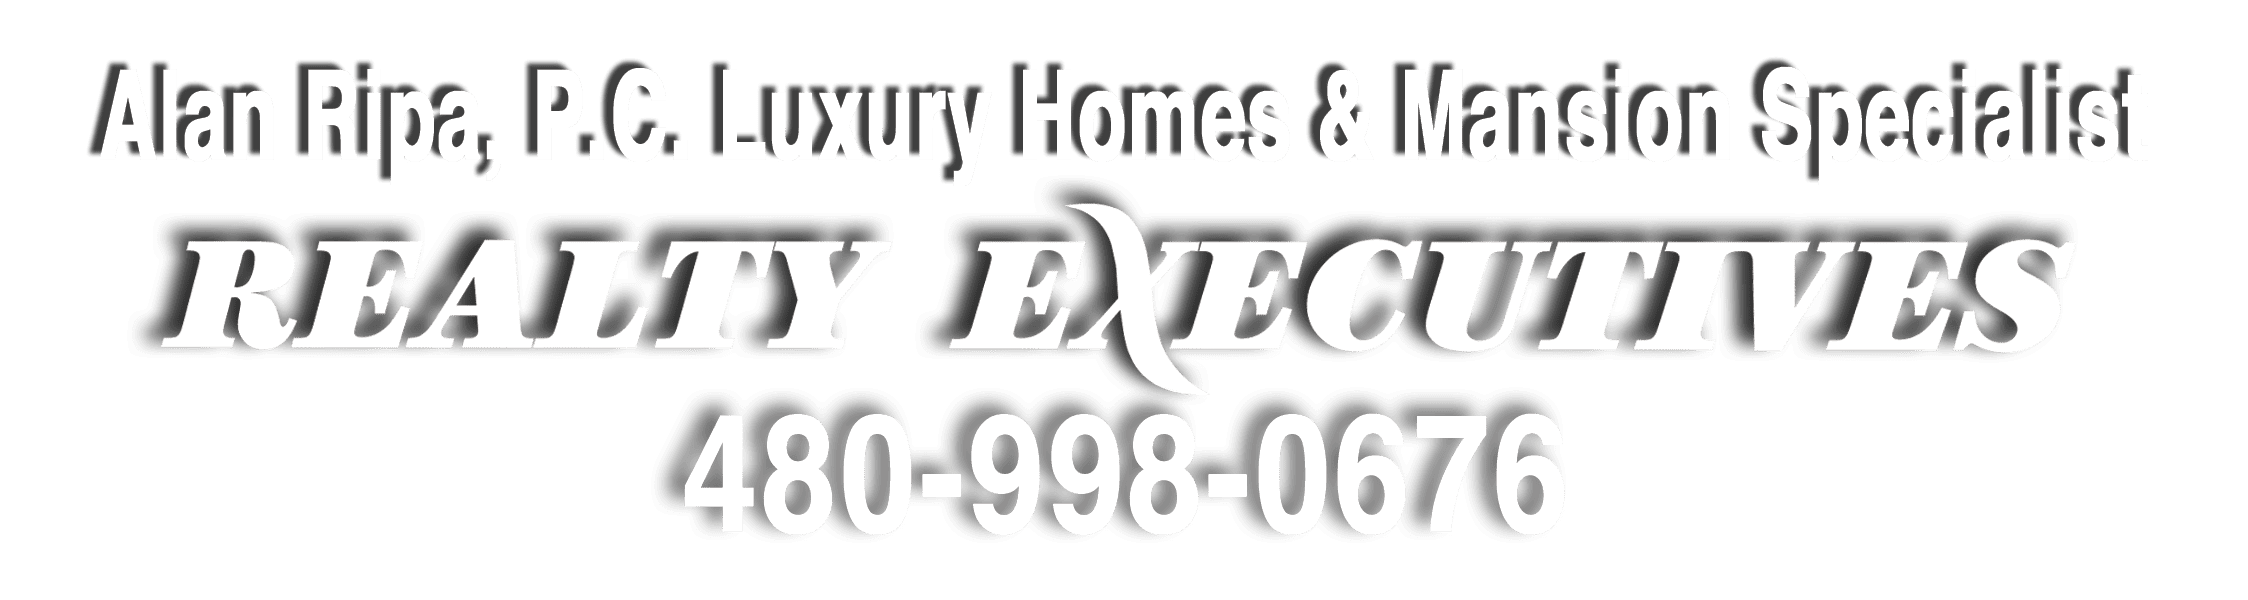 Alan Ripa, P.C. Luxury Home & Mansion Specialist